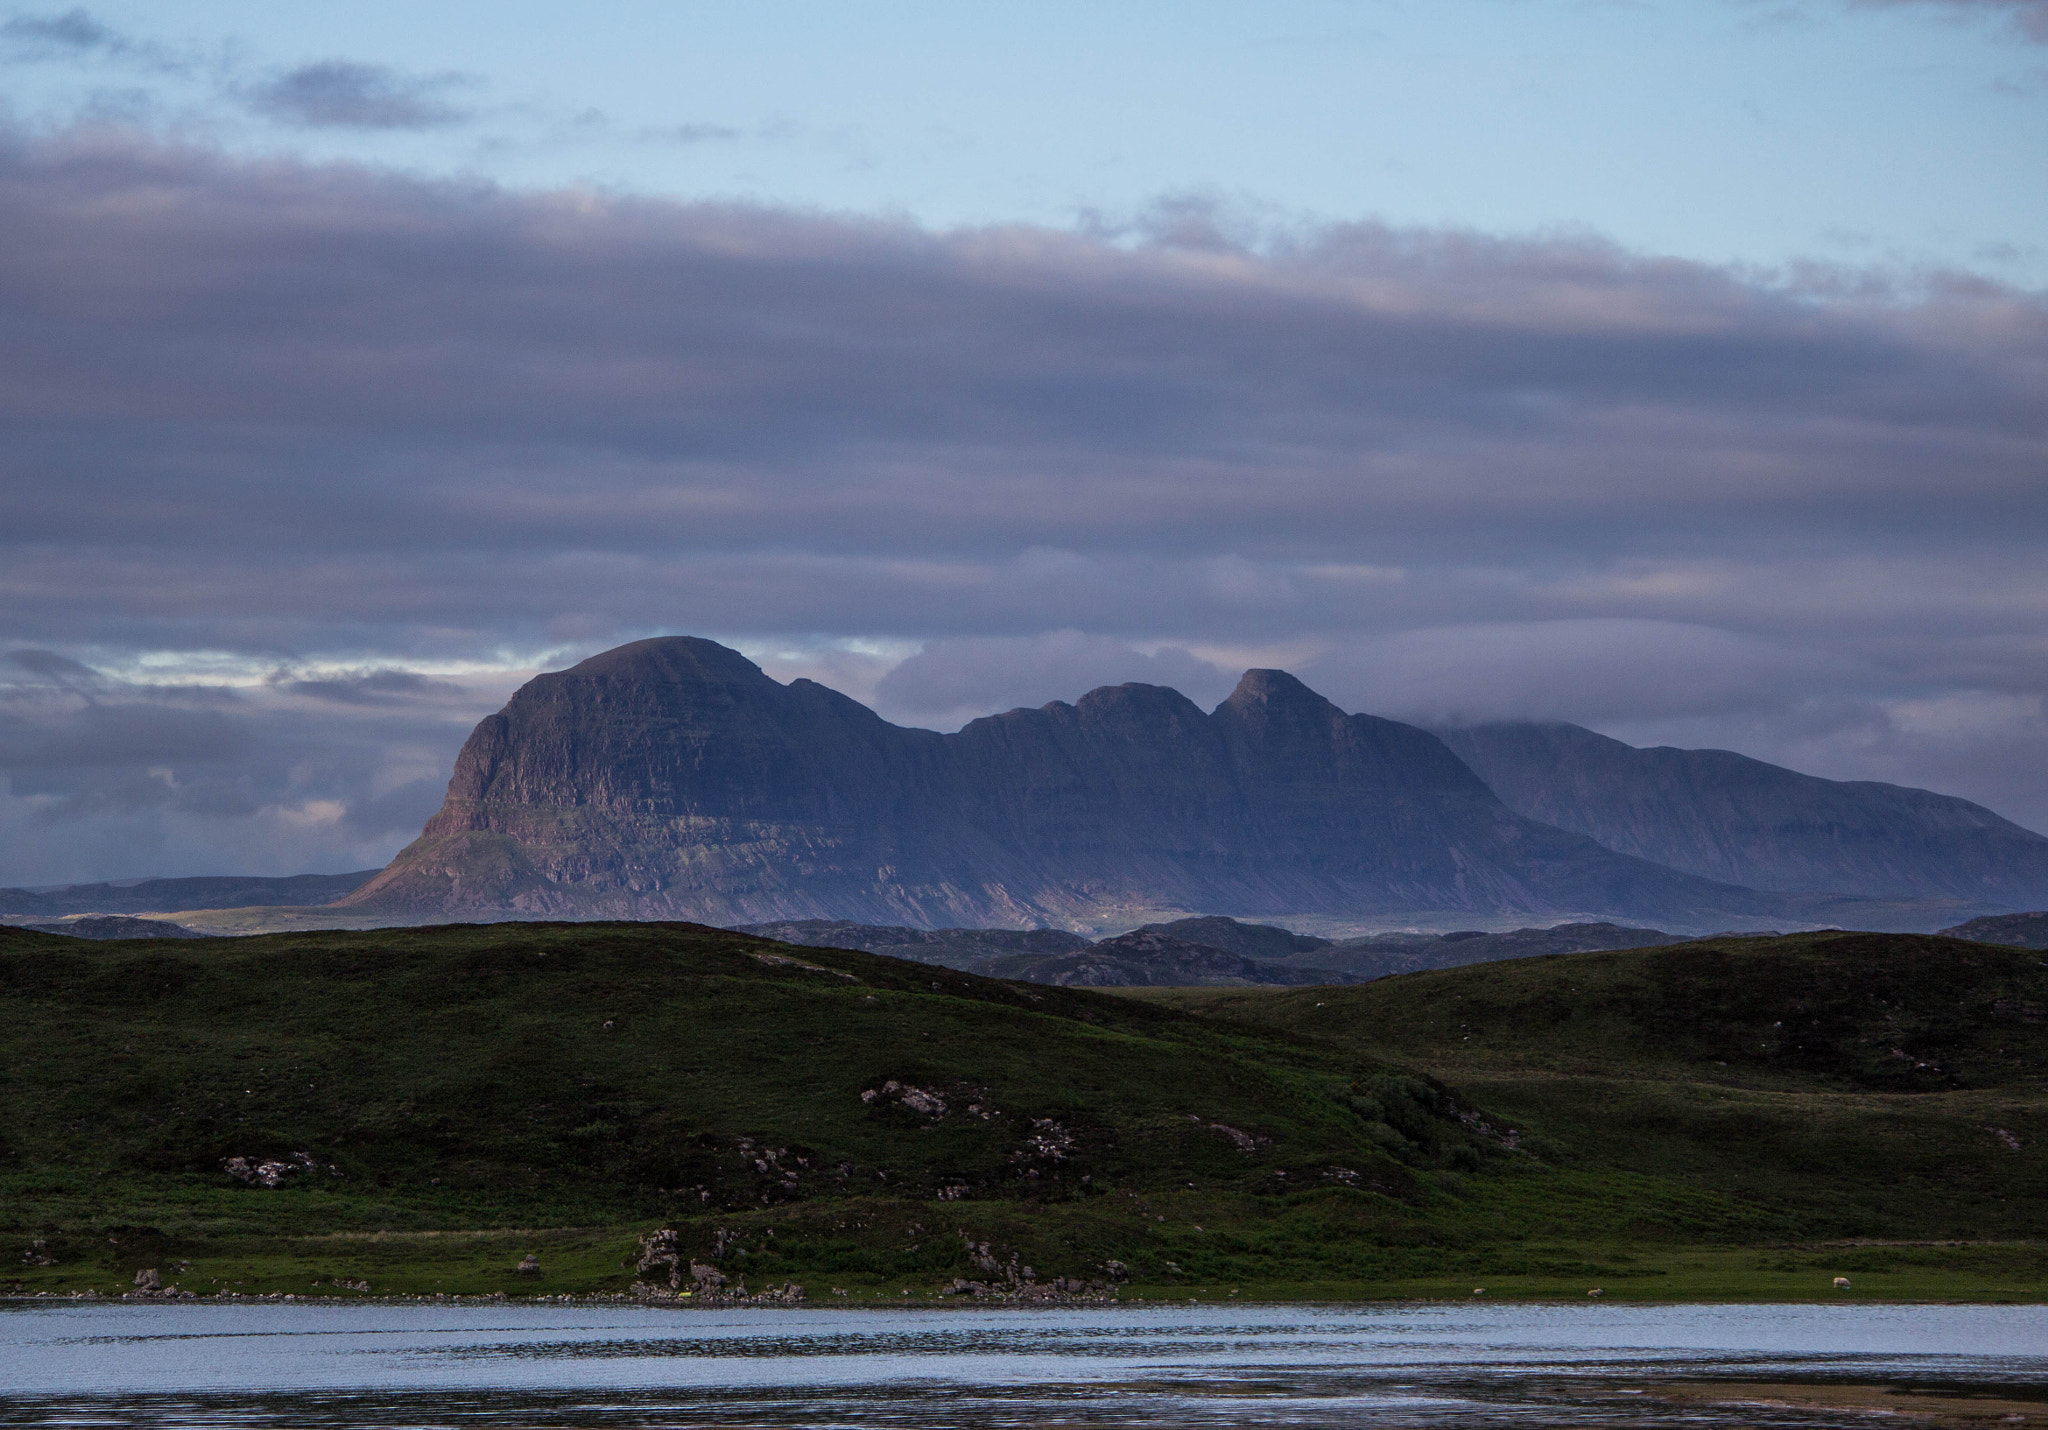 Photograph Sunset at Suilven by Dan James on 500px